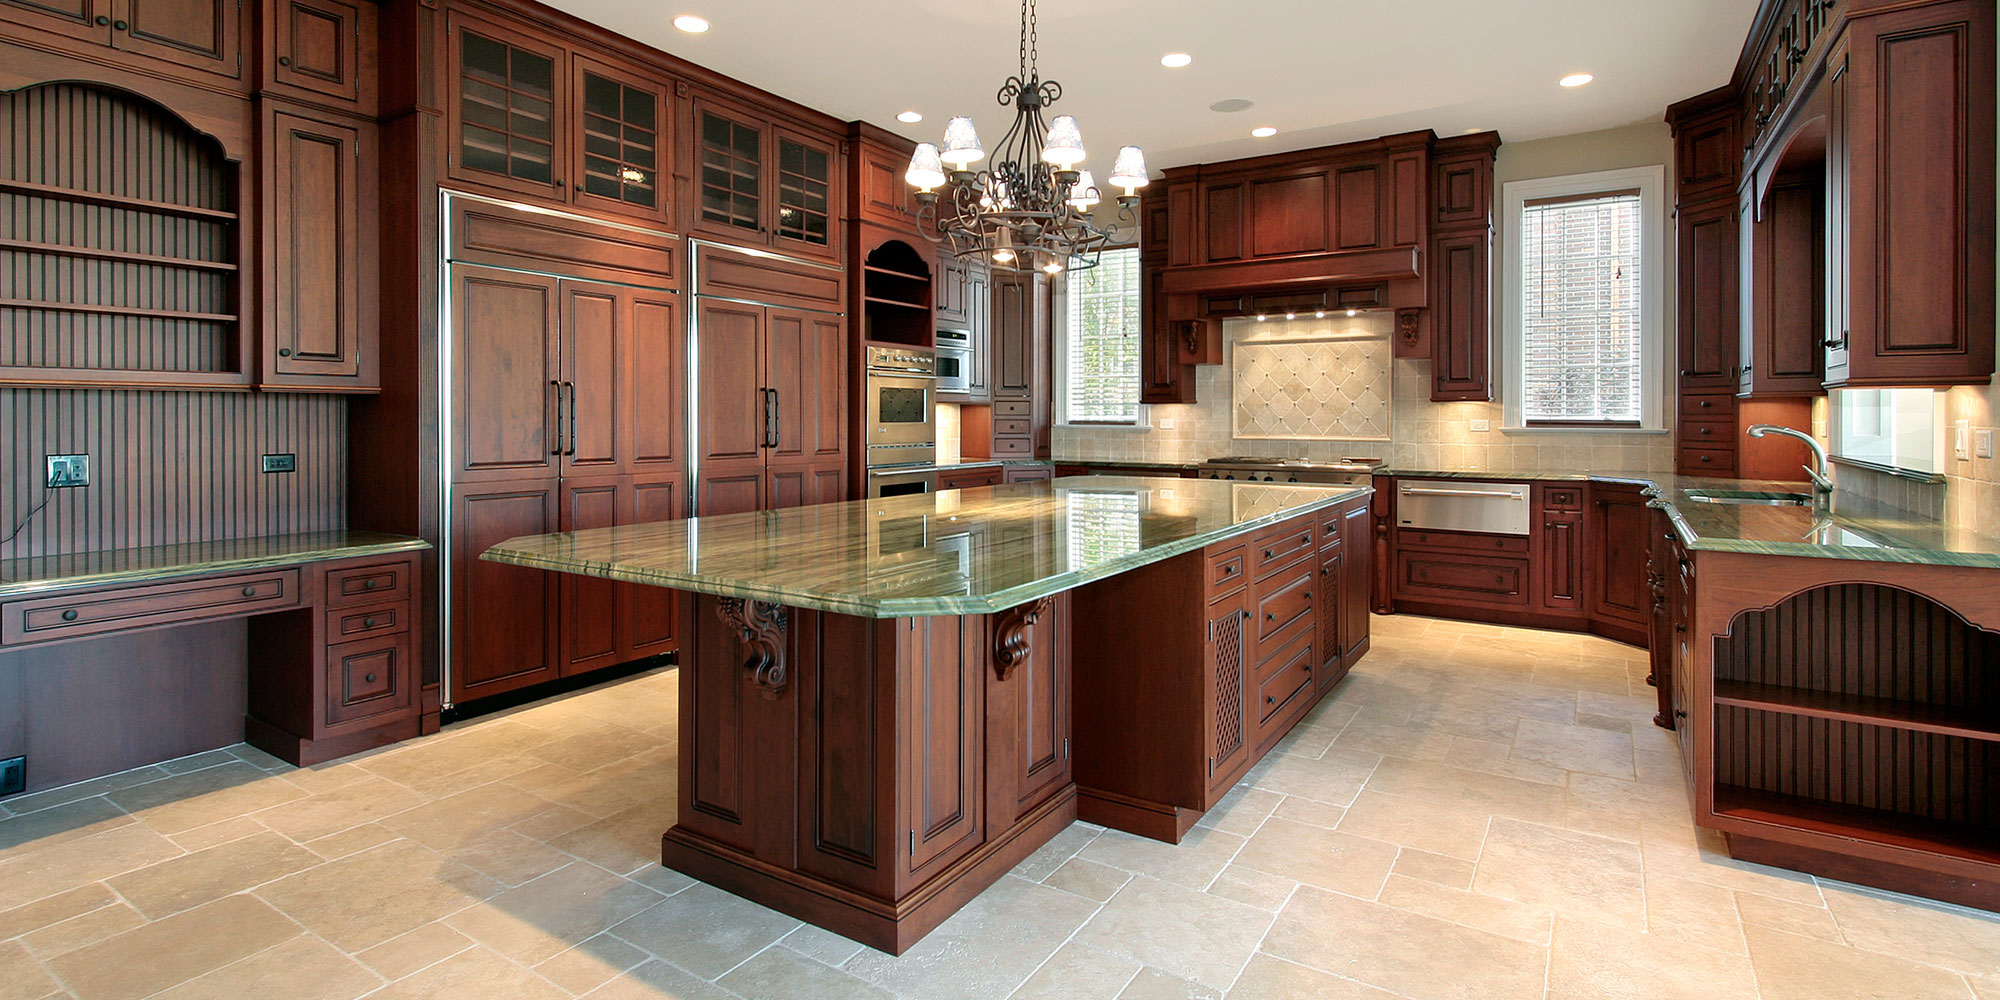 Interior Denver Kitchen Cabinets hti granite cabinetry kitchen cabinets denver cabinets